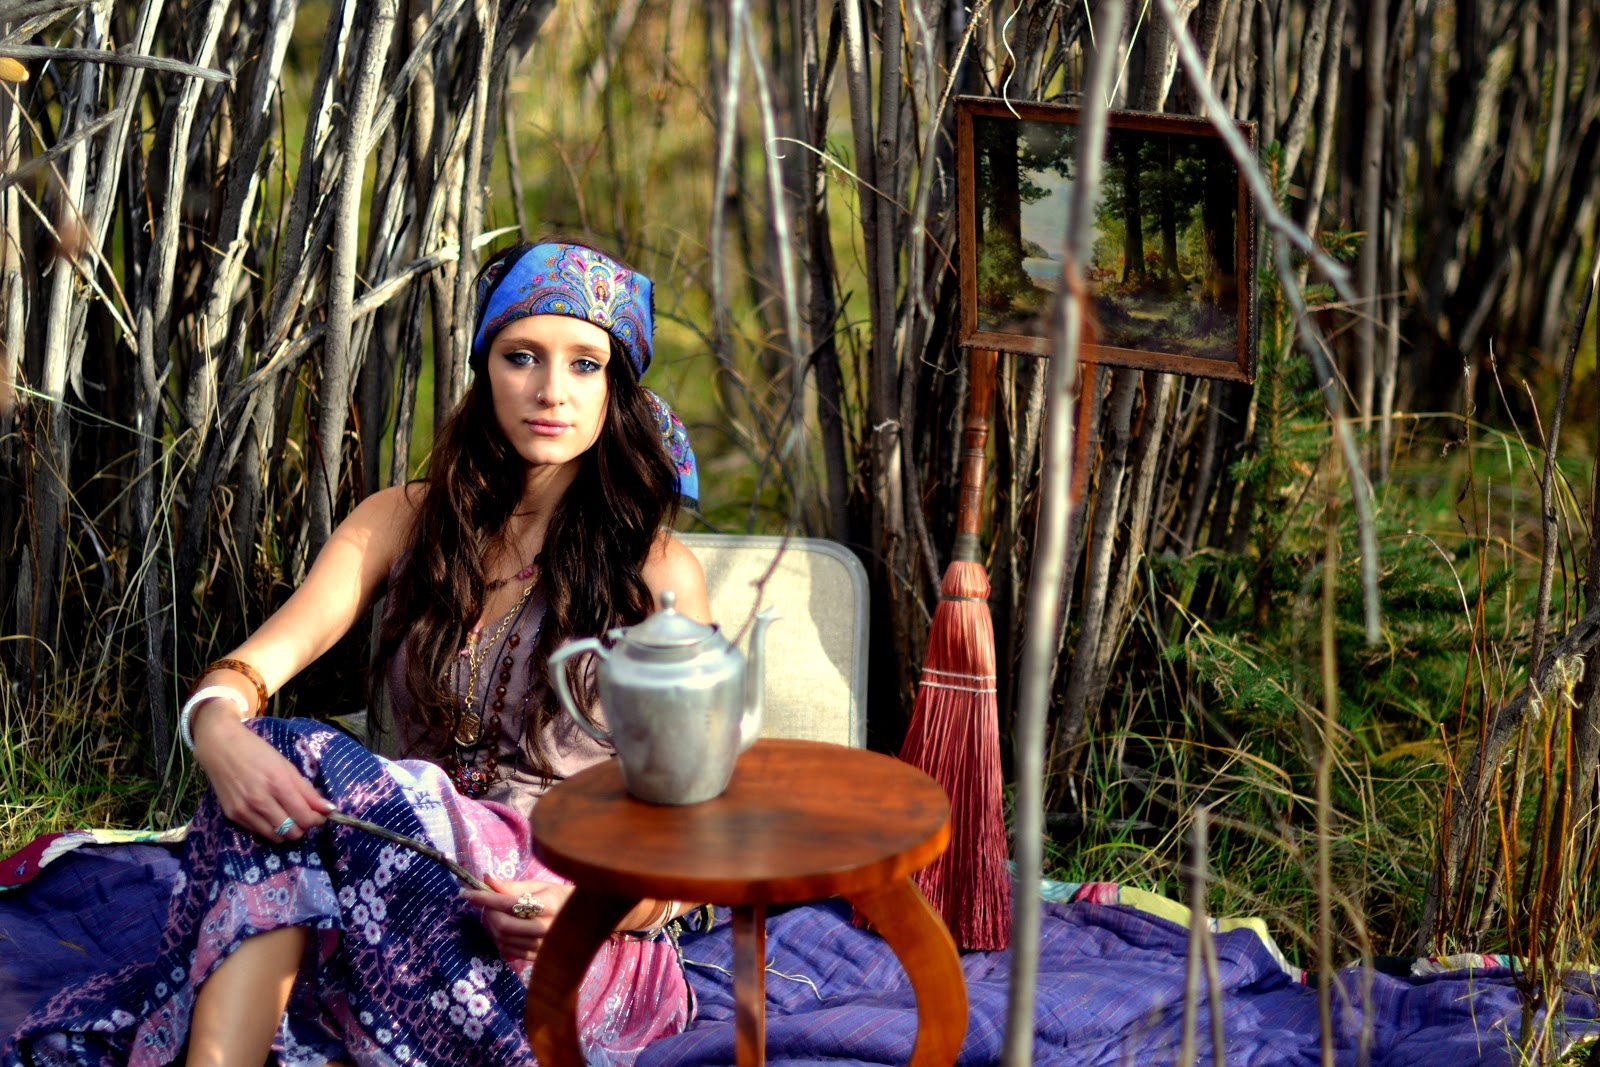 Gypsy photoshoot